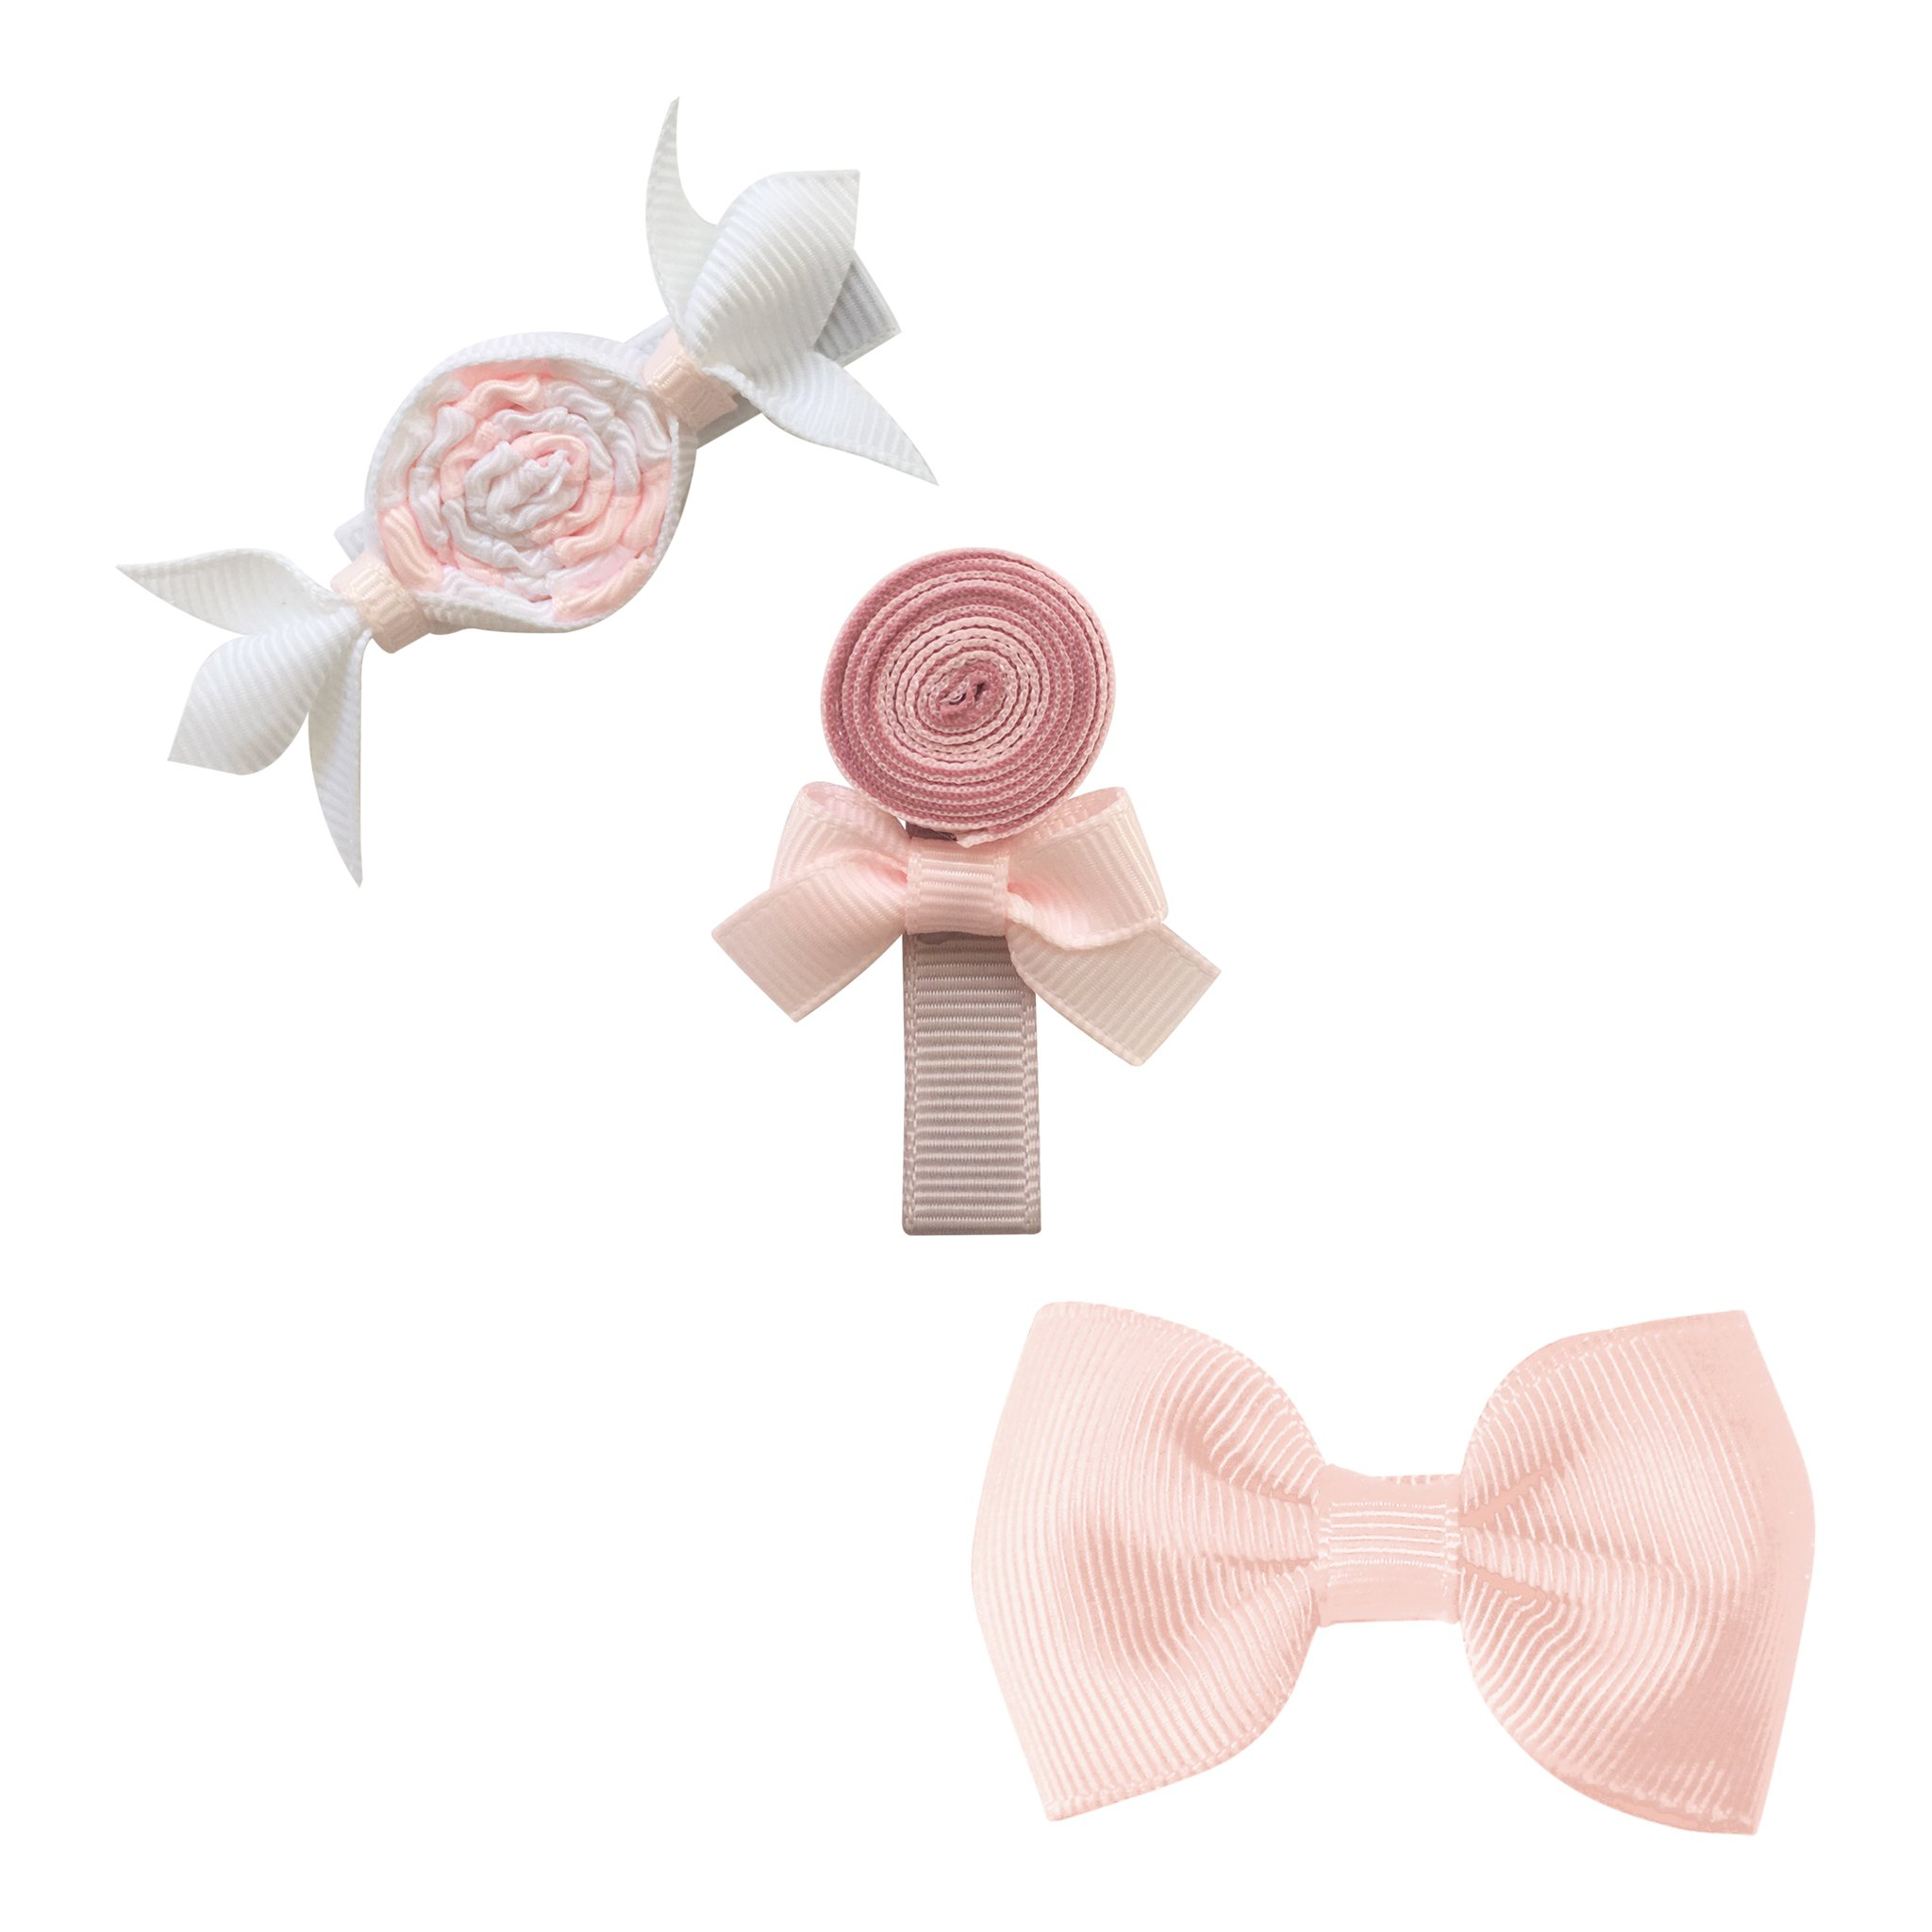 Image of Milledeux® Candy Collection gift set - Bonbon, Lollipop and Bow - Powder pink